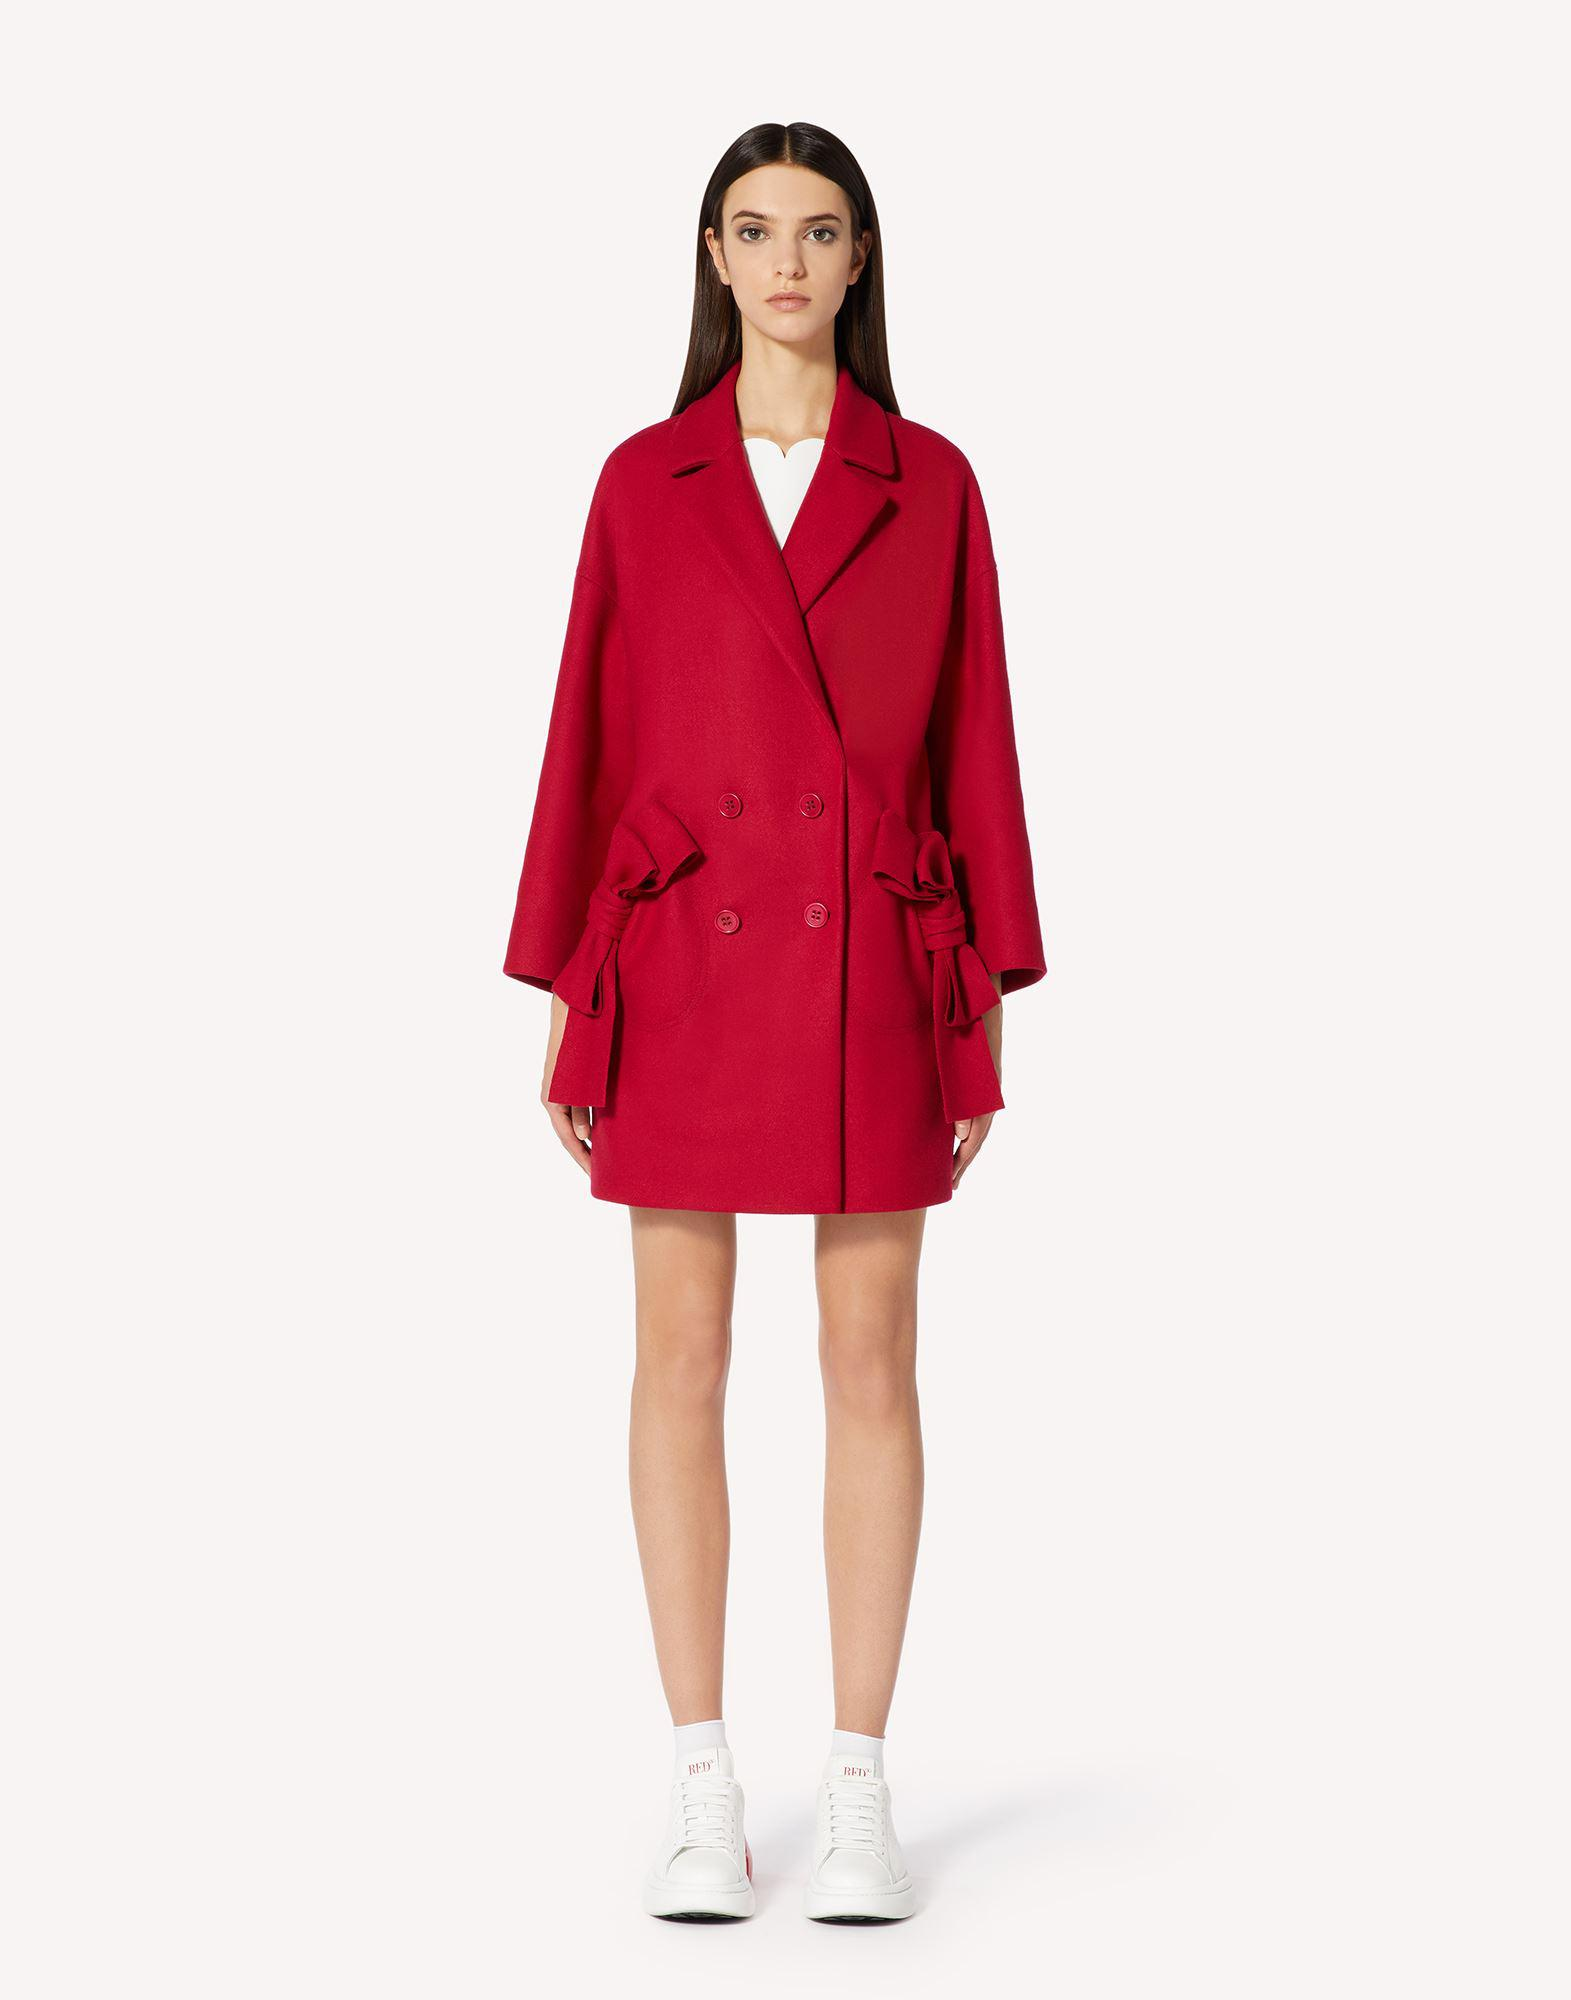 WOOL CASHMERE OVERSIZE COAT WITH BOW DETAILS